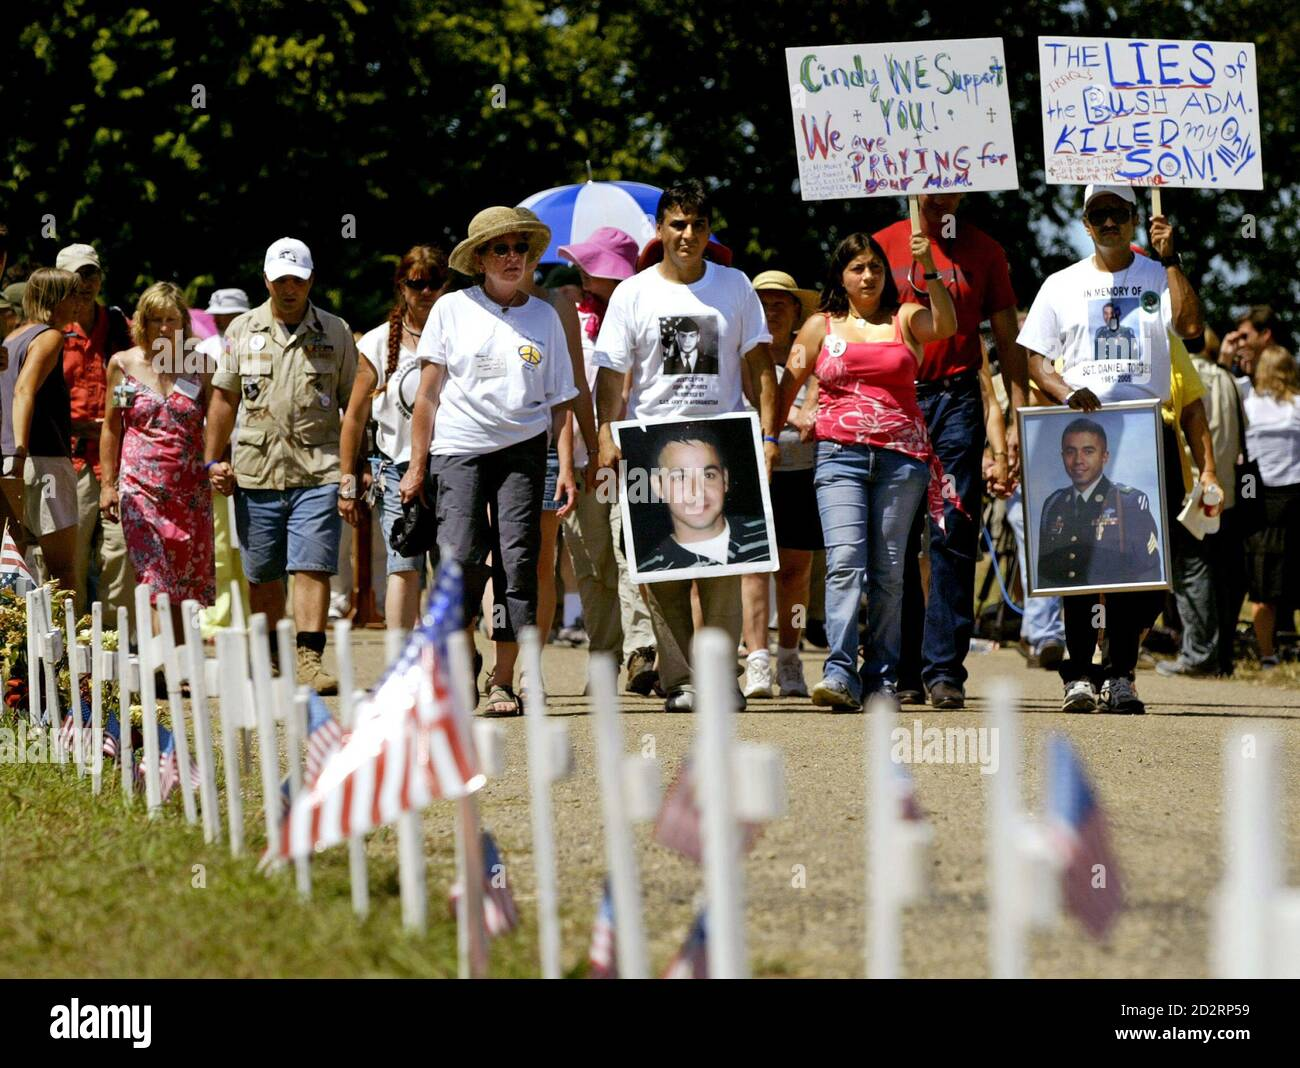 Anti-war protesters, led by Juan Torres (3rd R, front) who is carrying a picture of his military son, also named Juan, who was killed in Afghanistan, march past crosses representing dead U.S. soldiers near the ranch of U.S. President George W. Bush in Crawford, Texas August 19, 2005. In the absence of lead protester Cindy Sheehan, who raced back to California to visit her ailing mother, other parents of U.S. soldiers recently killed in the Middle East have rallied together for her cause, to meet with Bush in an effort to change his war policy. REUTERS/Jason Reed  JIR/CCK Stock Photo